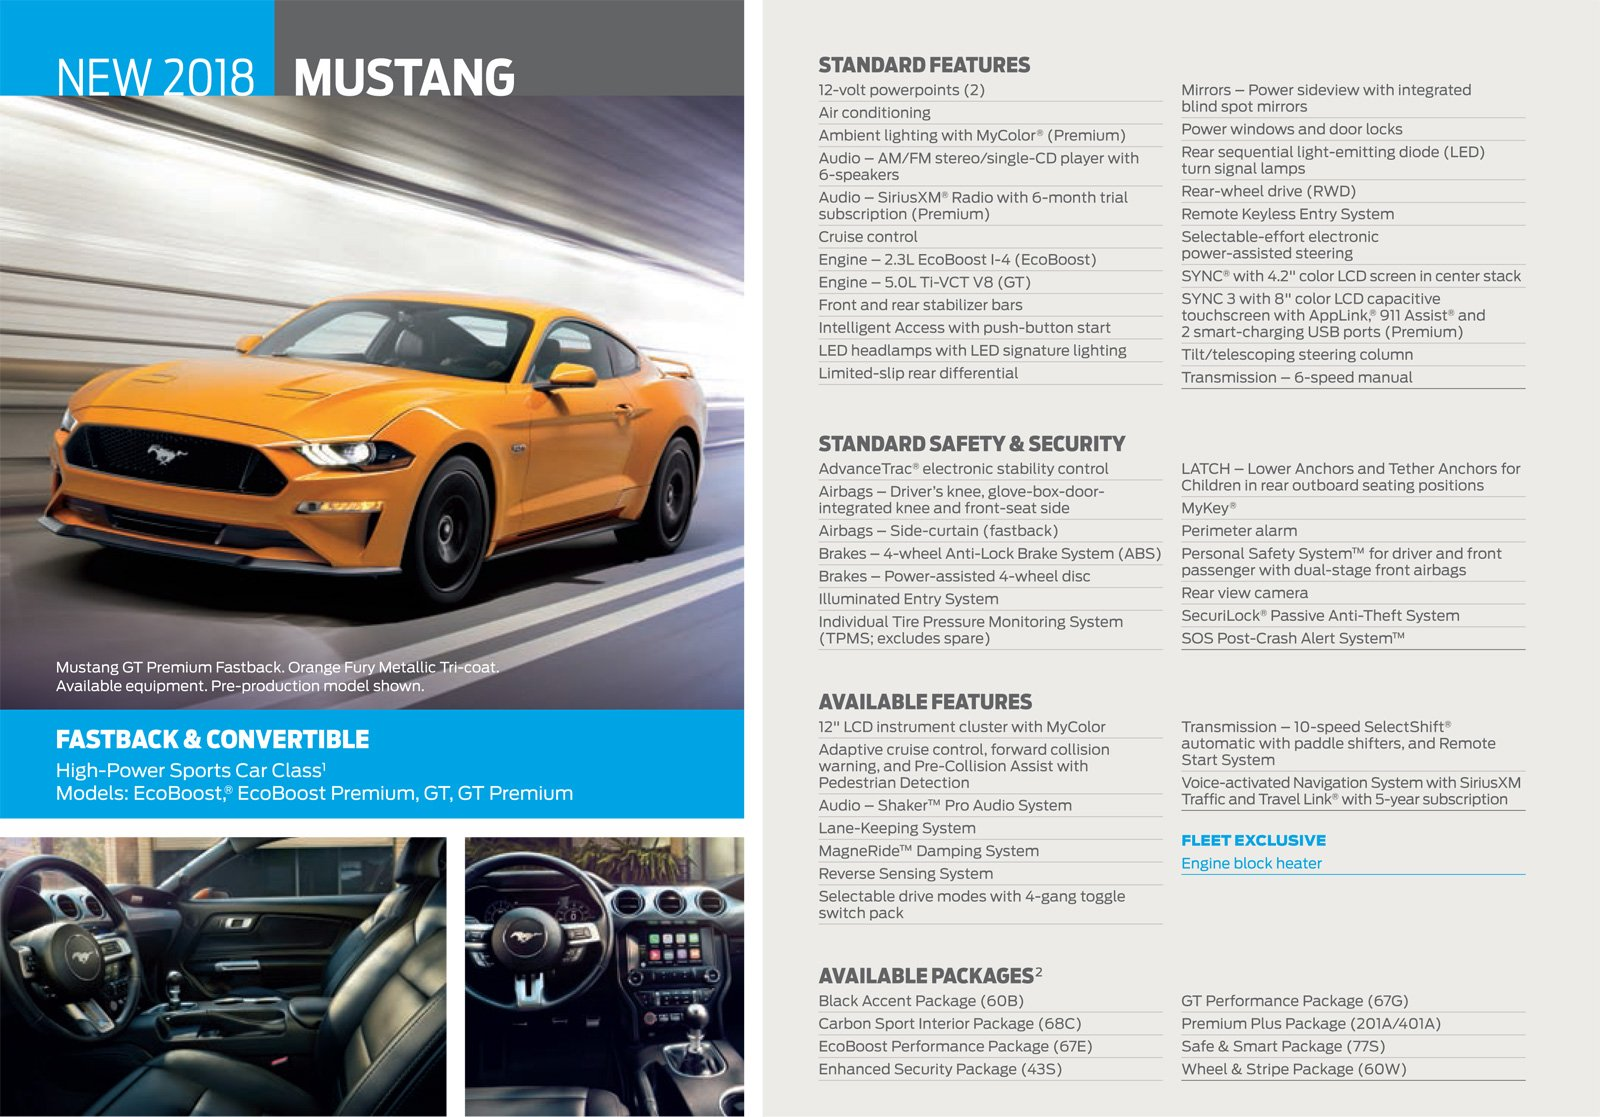 Ford Car Dealerships >> 2018 Ford Mustang Standard Features Revealed in Leaked Brochure » AutoGuide.com News